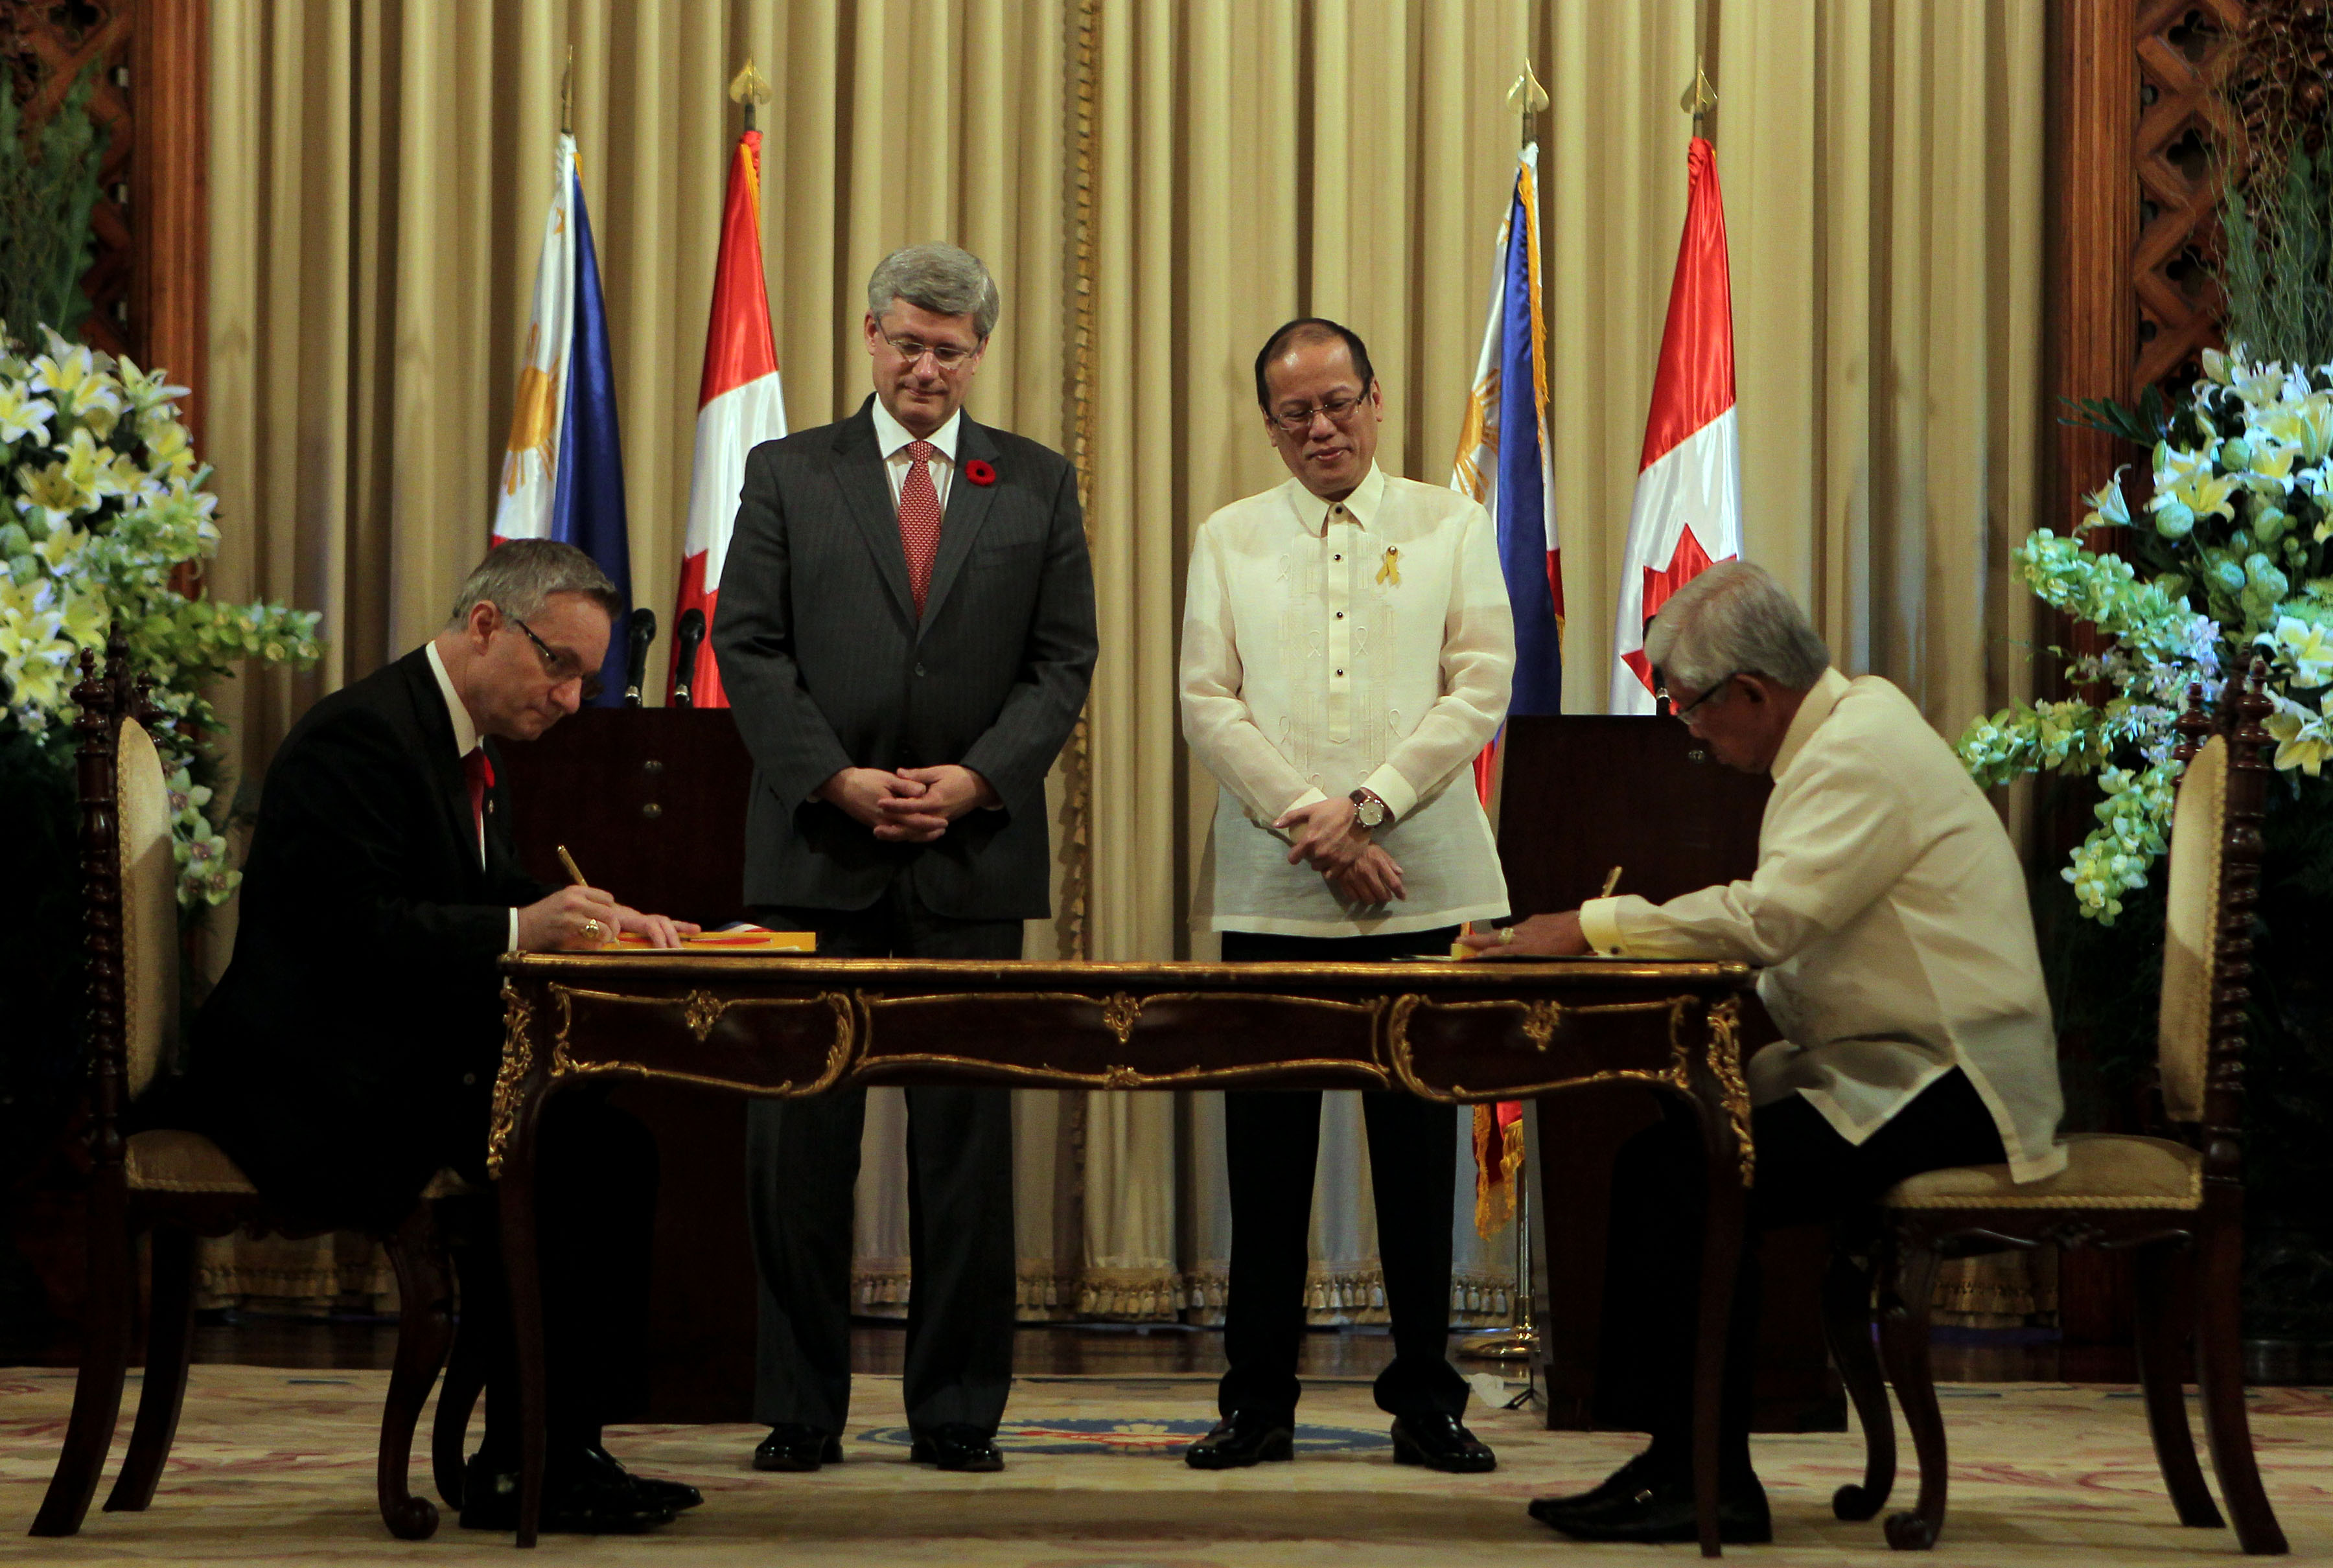 PROCUREMENT DEAL. President Benigno S. Aquino III and The Right Honourable Stephen Harper, Prime Minister of Canada, witnessed as Defense Secretary Voltaire Gazmin and Canadian Minister for International Trade Ed Fast signs the Memorandum of Understanding (MOU) between the Philippine Department of National Defense and the Canadian Commercial Cooperation on government-to-government transactions in defense and military-related procurements, at the Reception Hall, Malacañan Palace during his State Visit to the Republic of the Philippines on Saturday, November 10, 2012. Photo by: Benhur Arcayan / Malacañang Photo Bureau